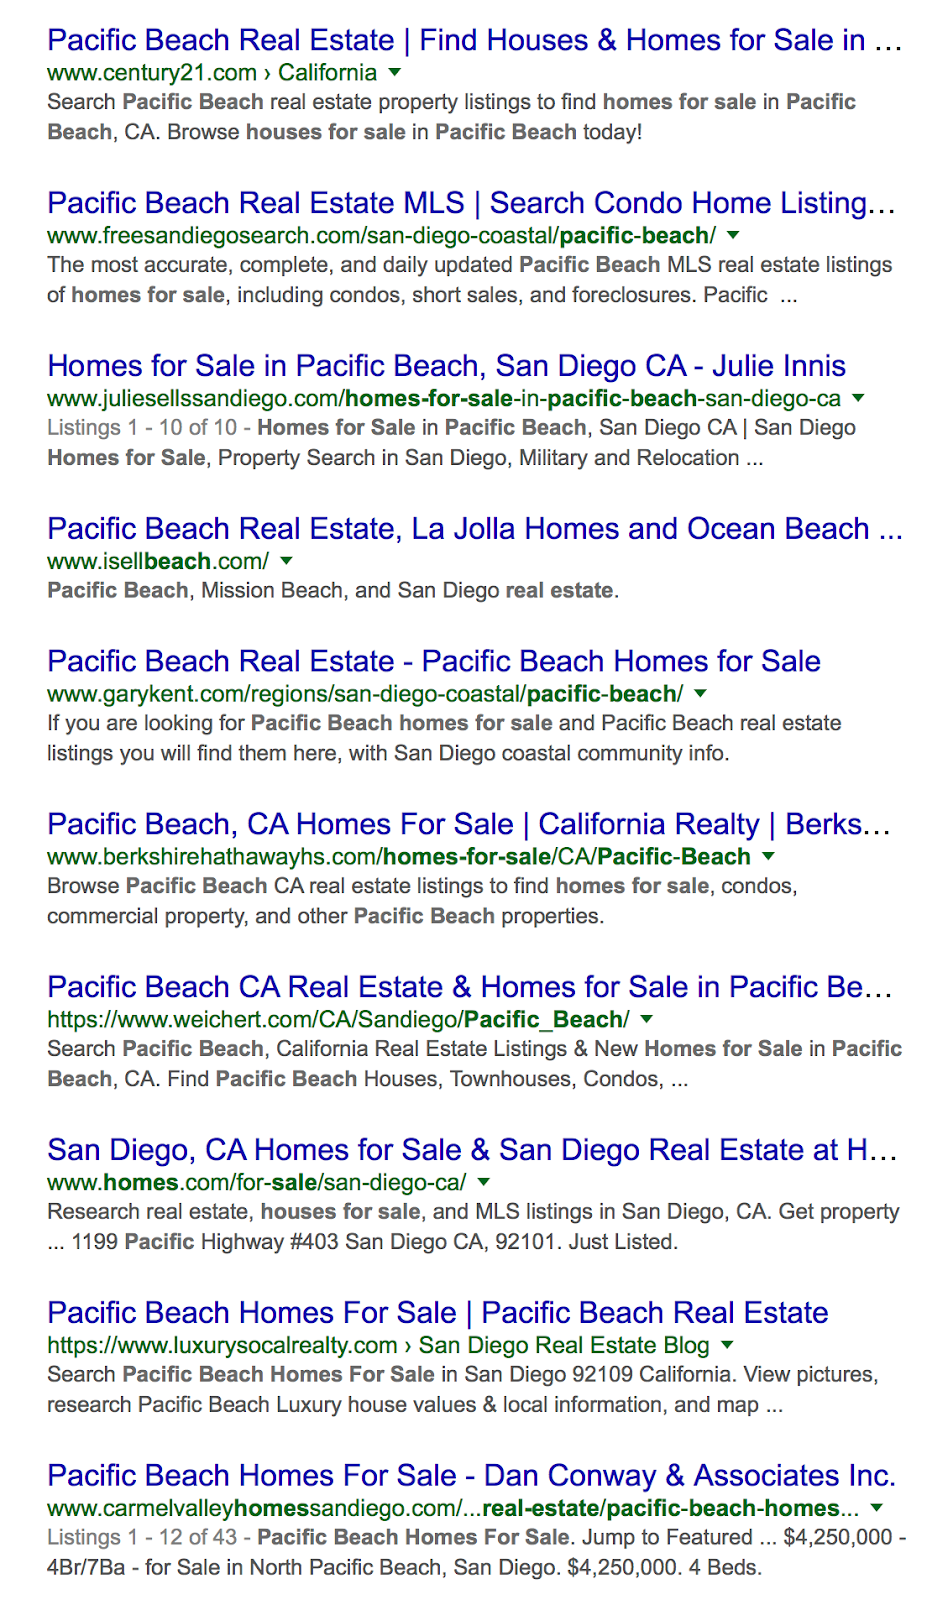 Pacific_Beach_Homes_For_Sale_-_Google_Search.png